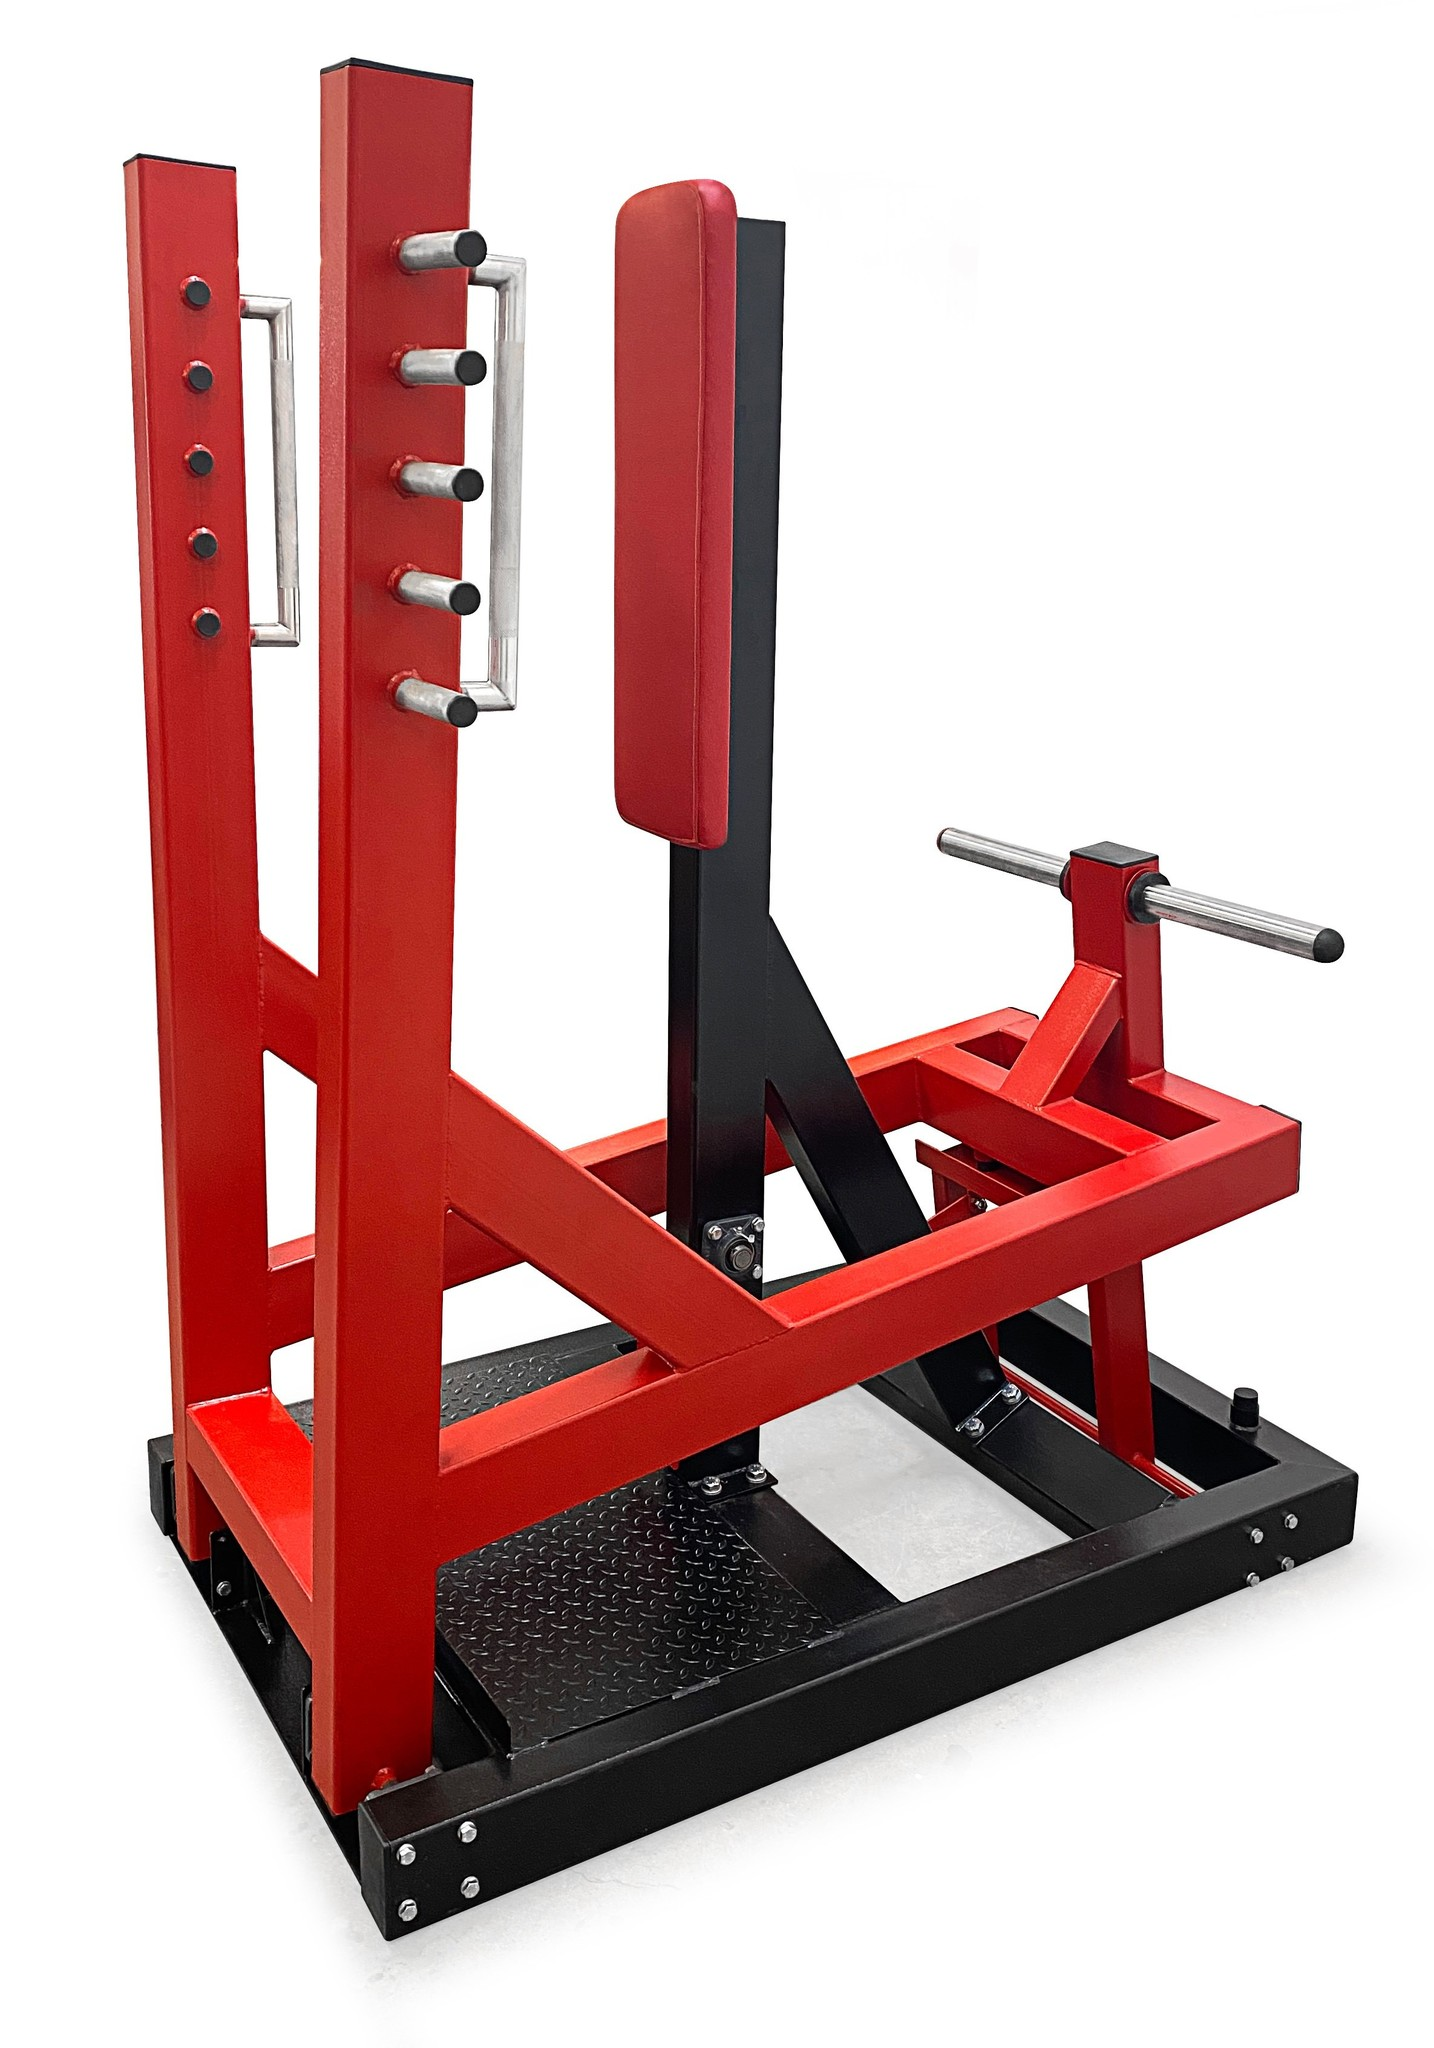 6a chestpress machine